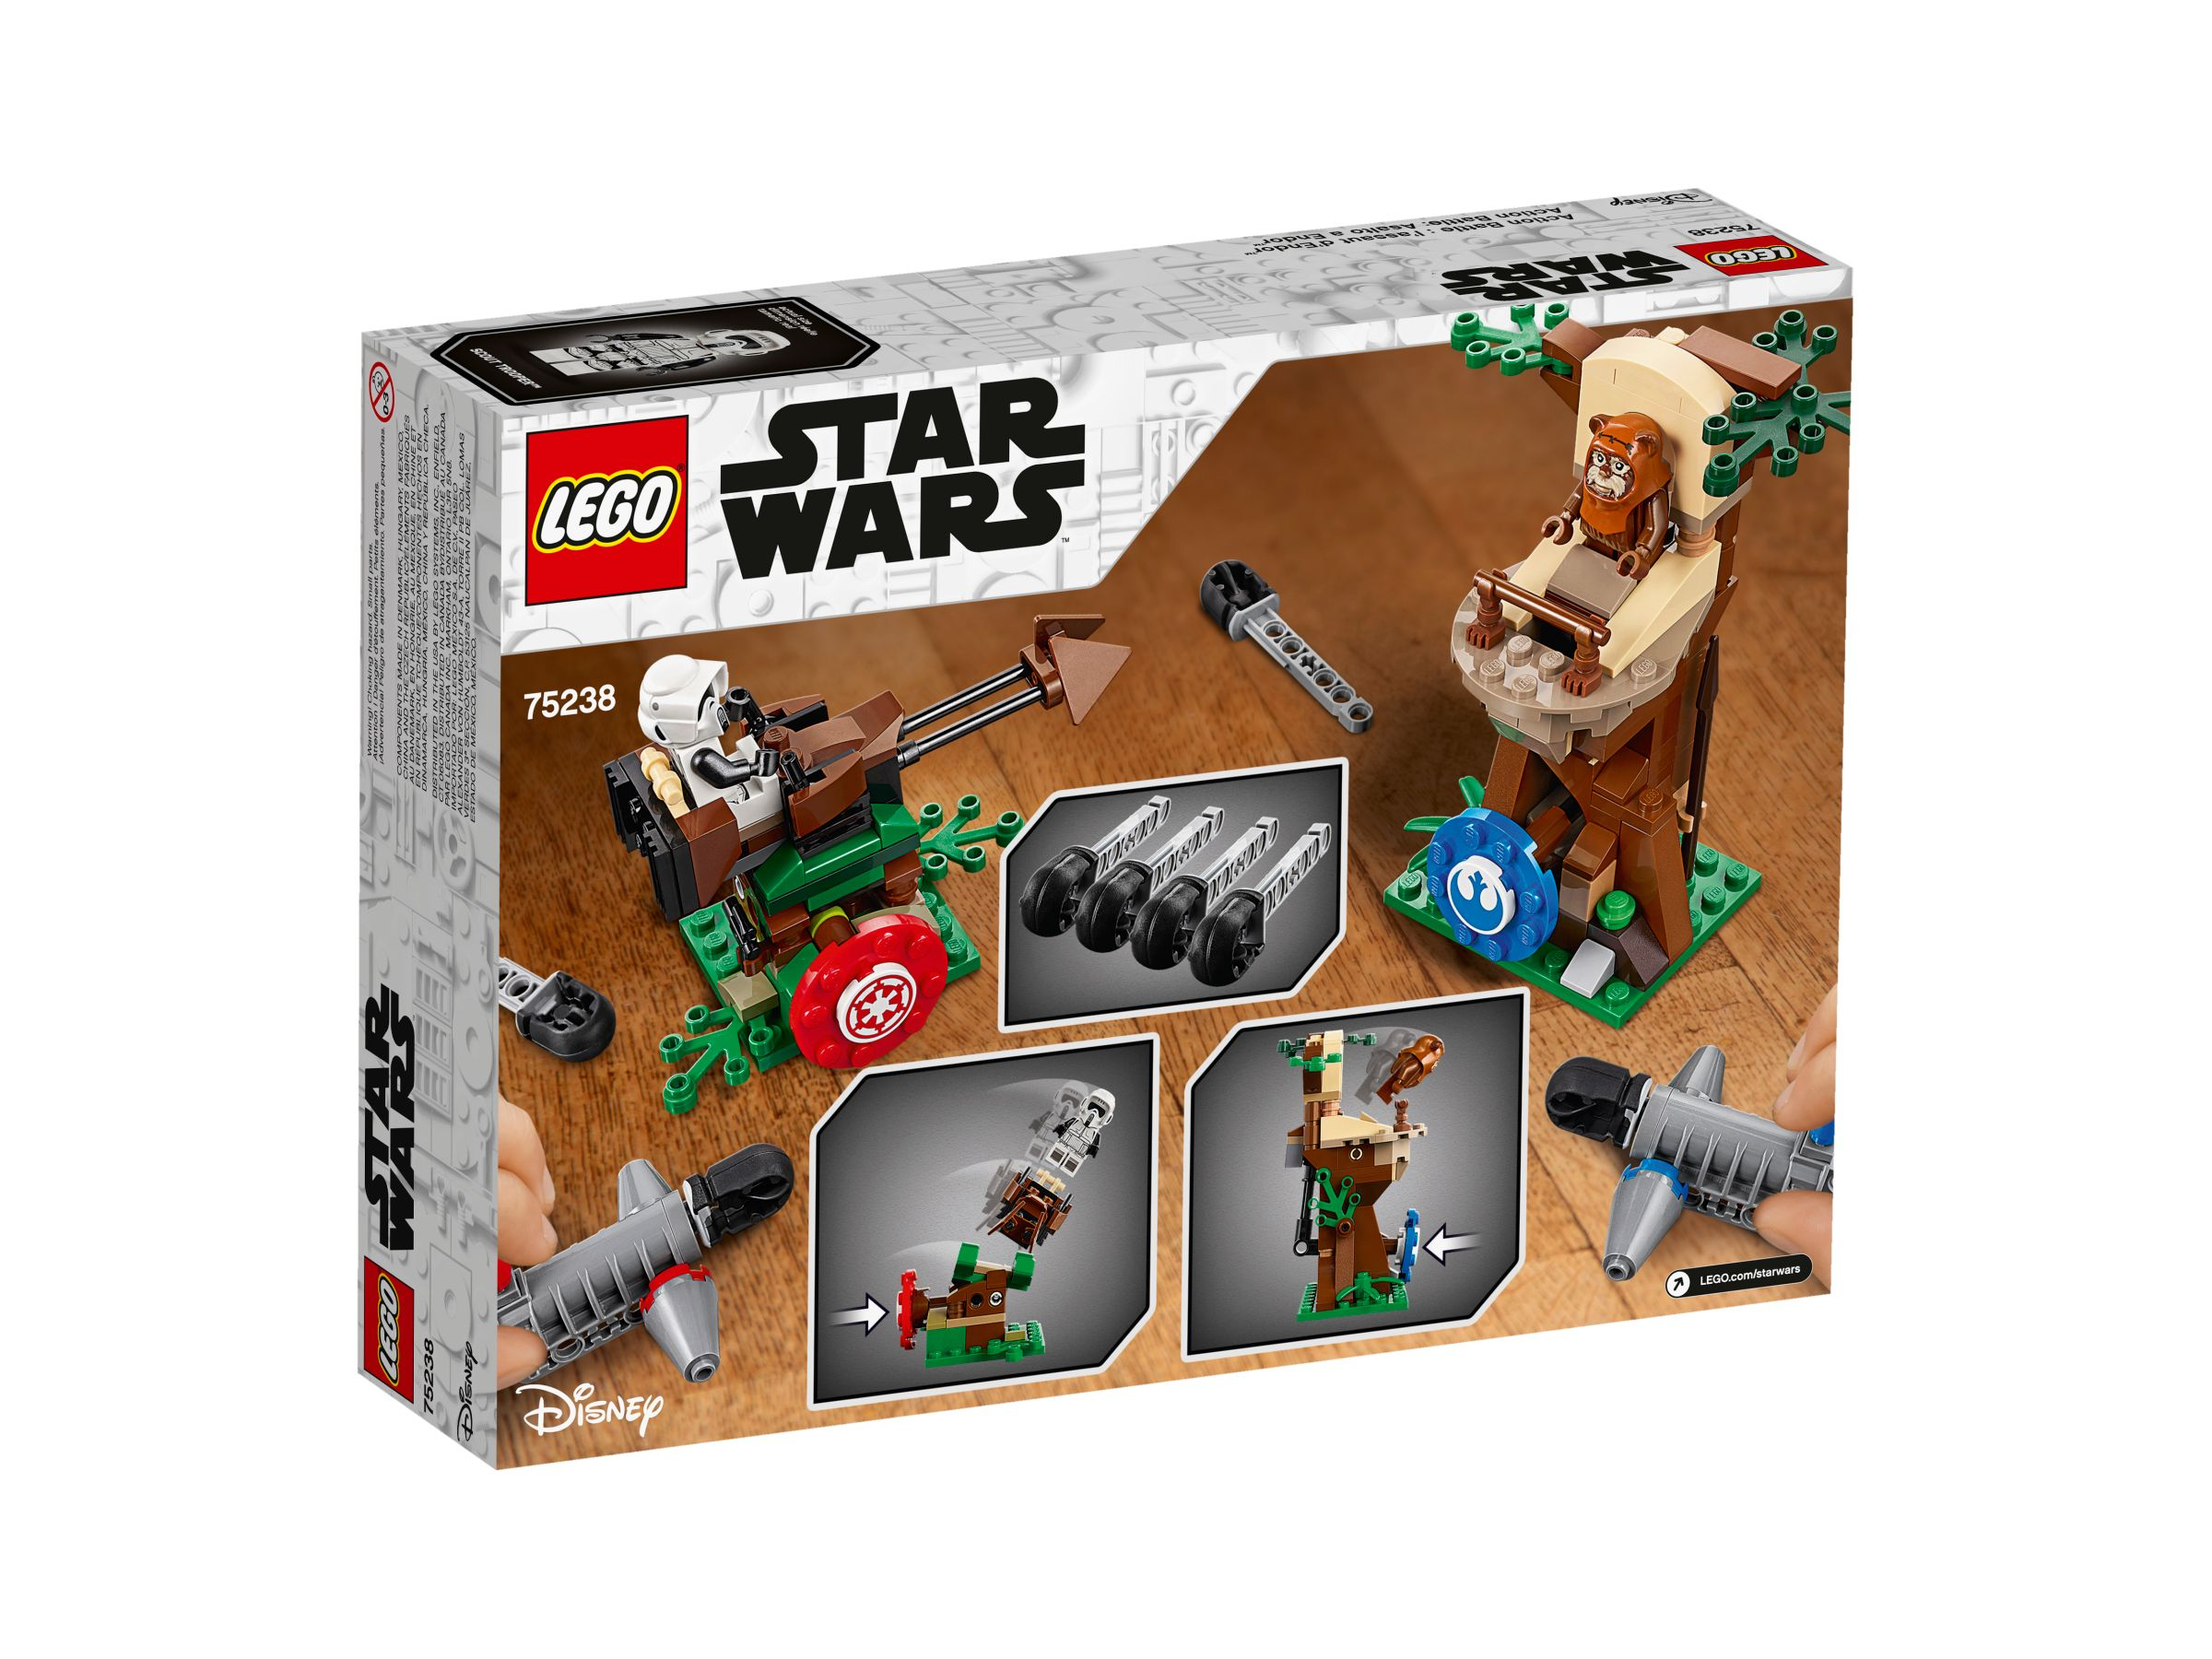 LEGO Star Wars 75238 Action Battle Endor™ Attacke LEGO_75238_alt4.jpg